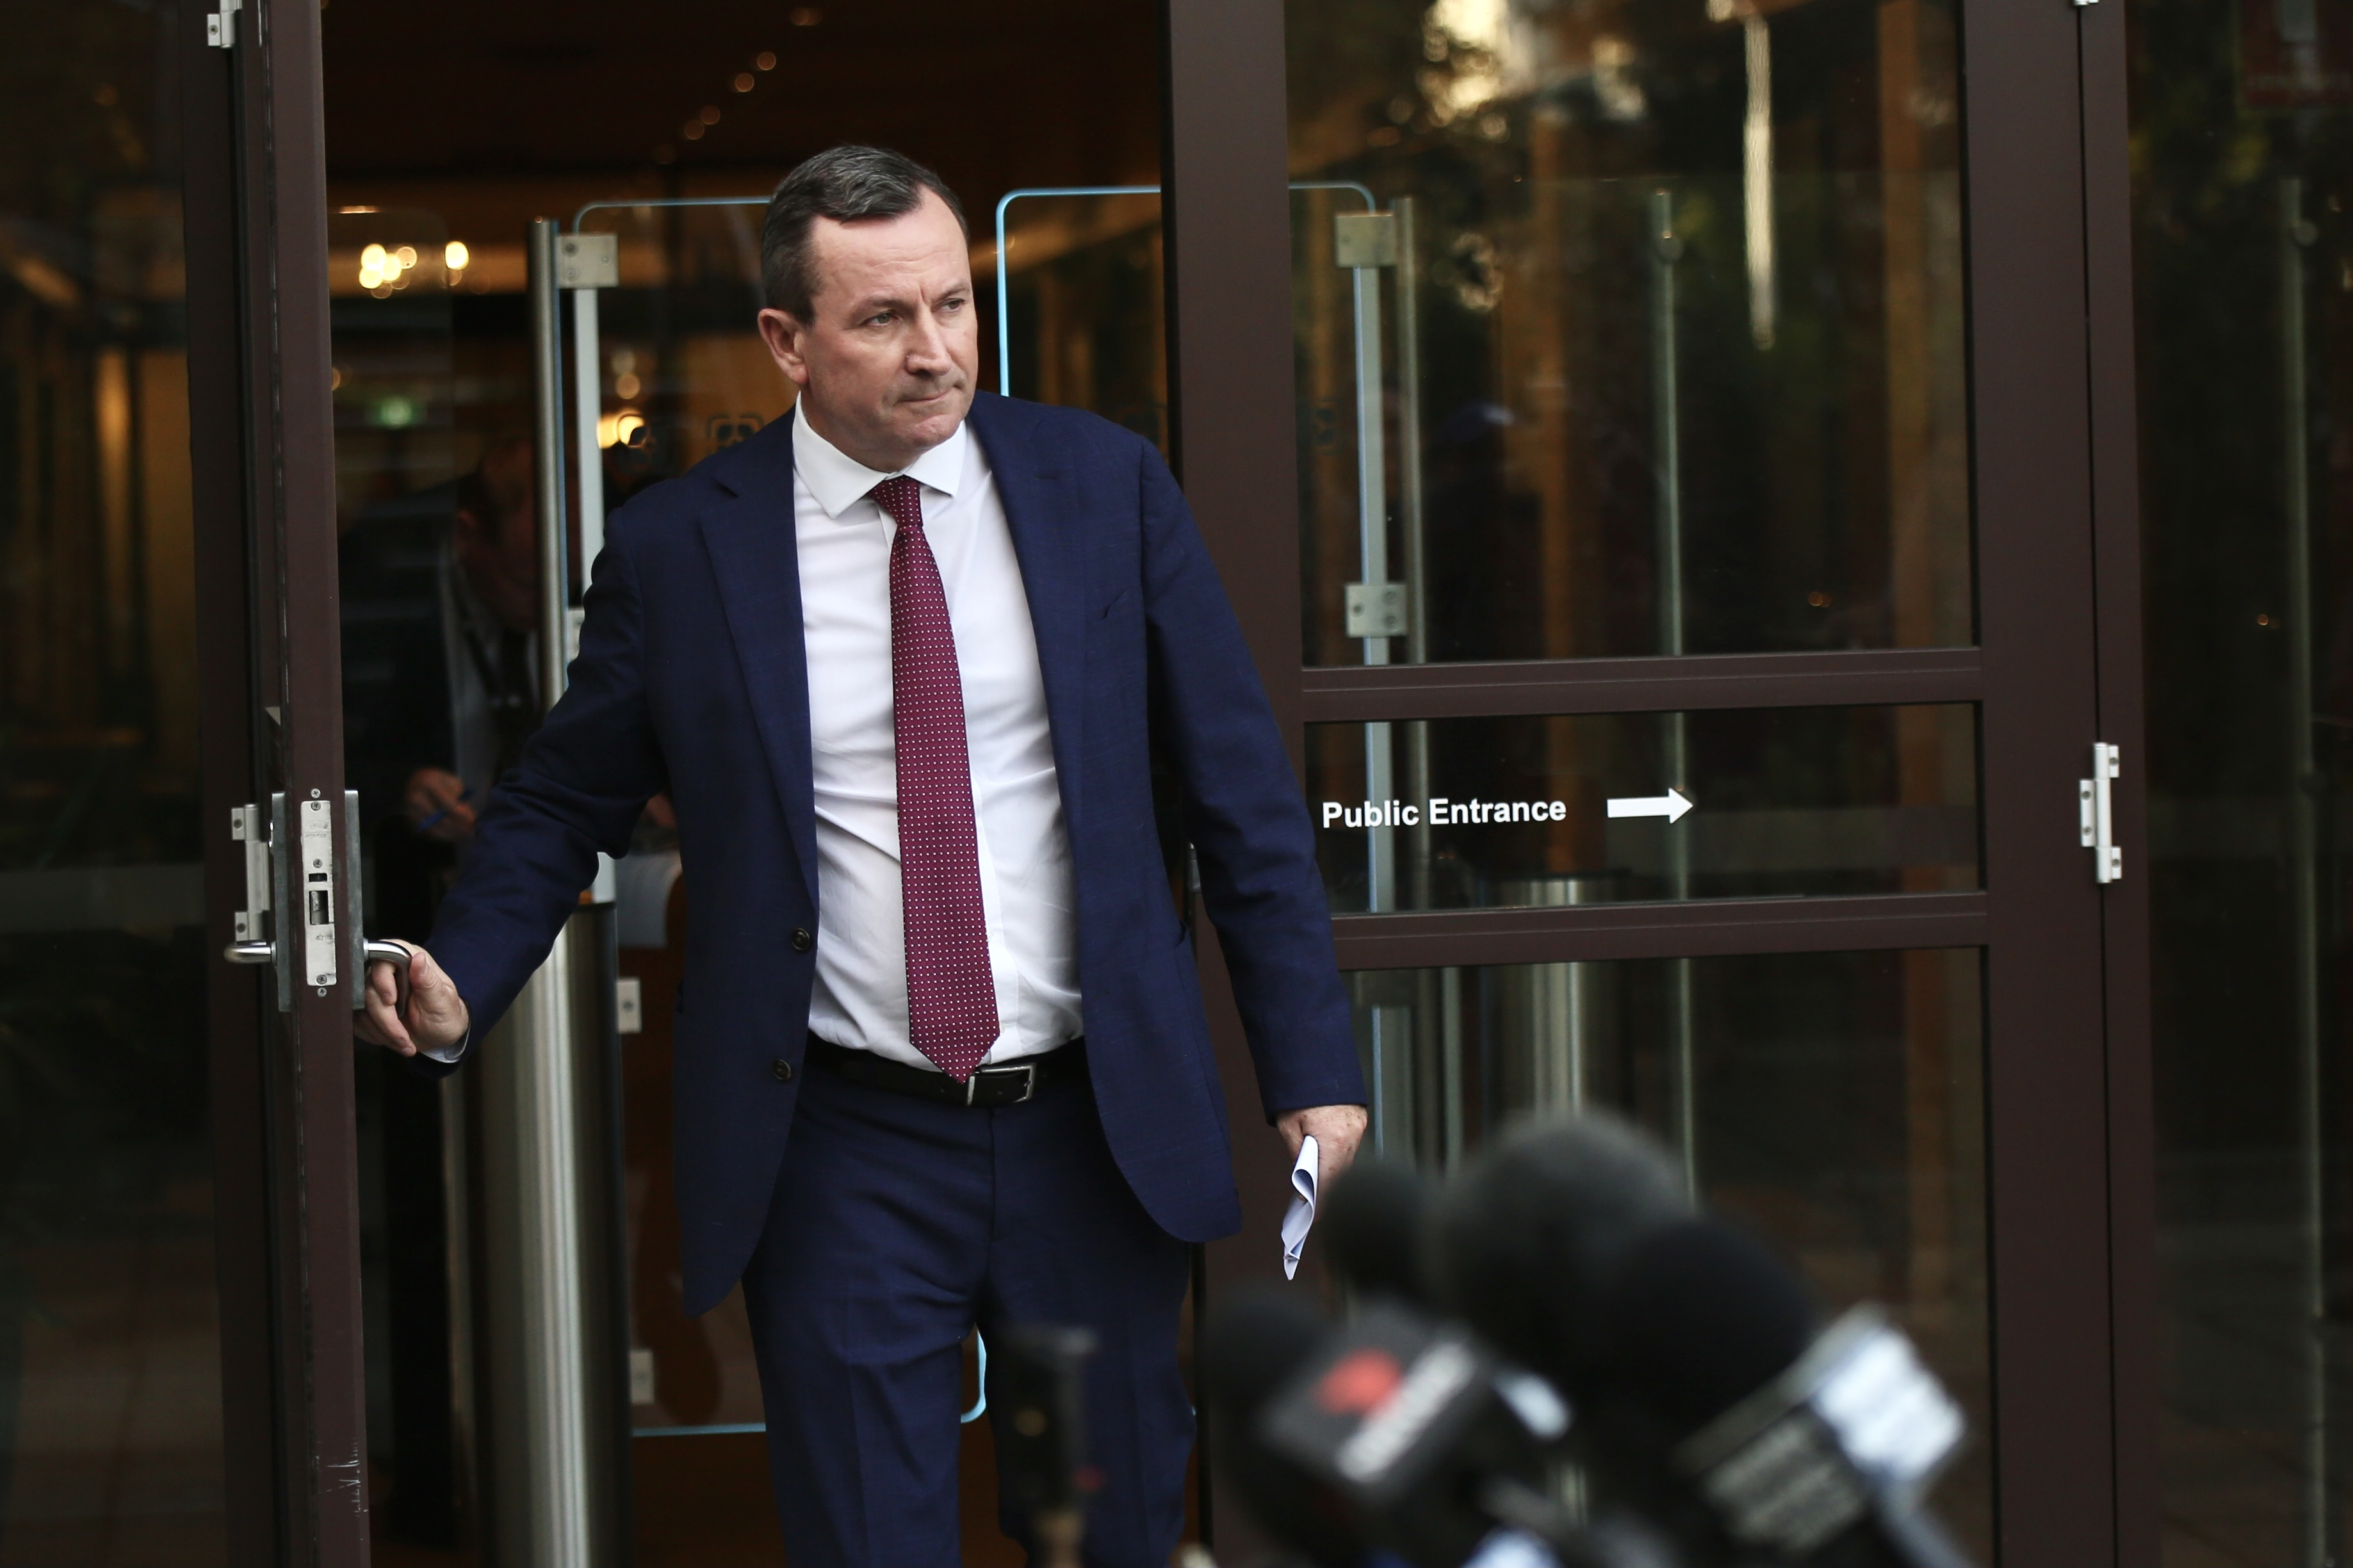 The Premier Mark McGowan wearing a suit with a red tie opens a glass door into a court yard with waiting microphones in the fore